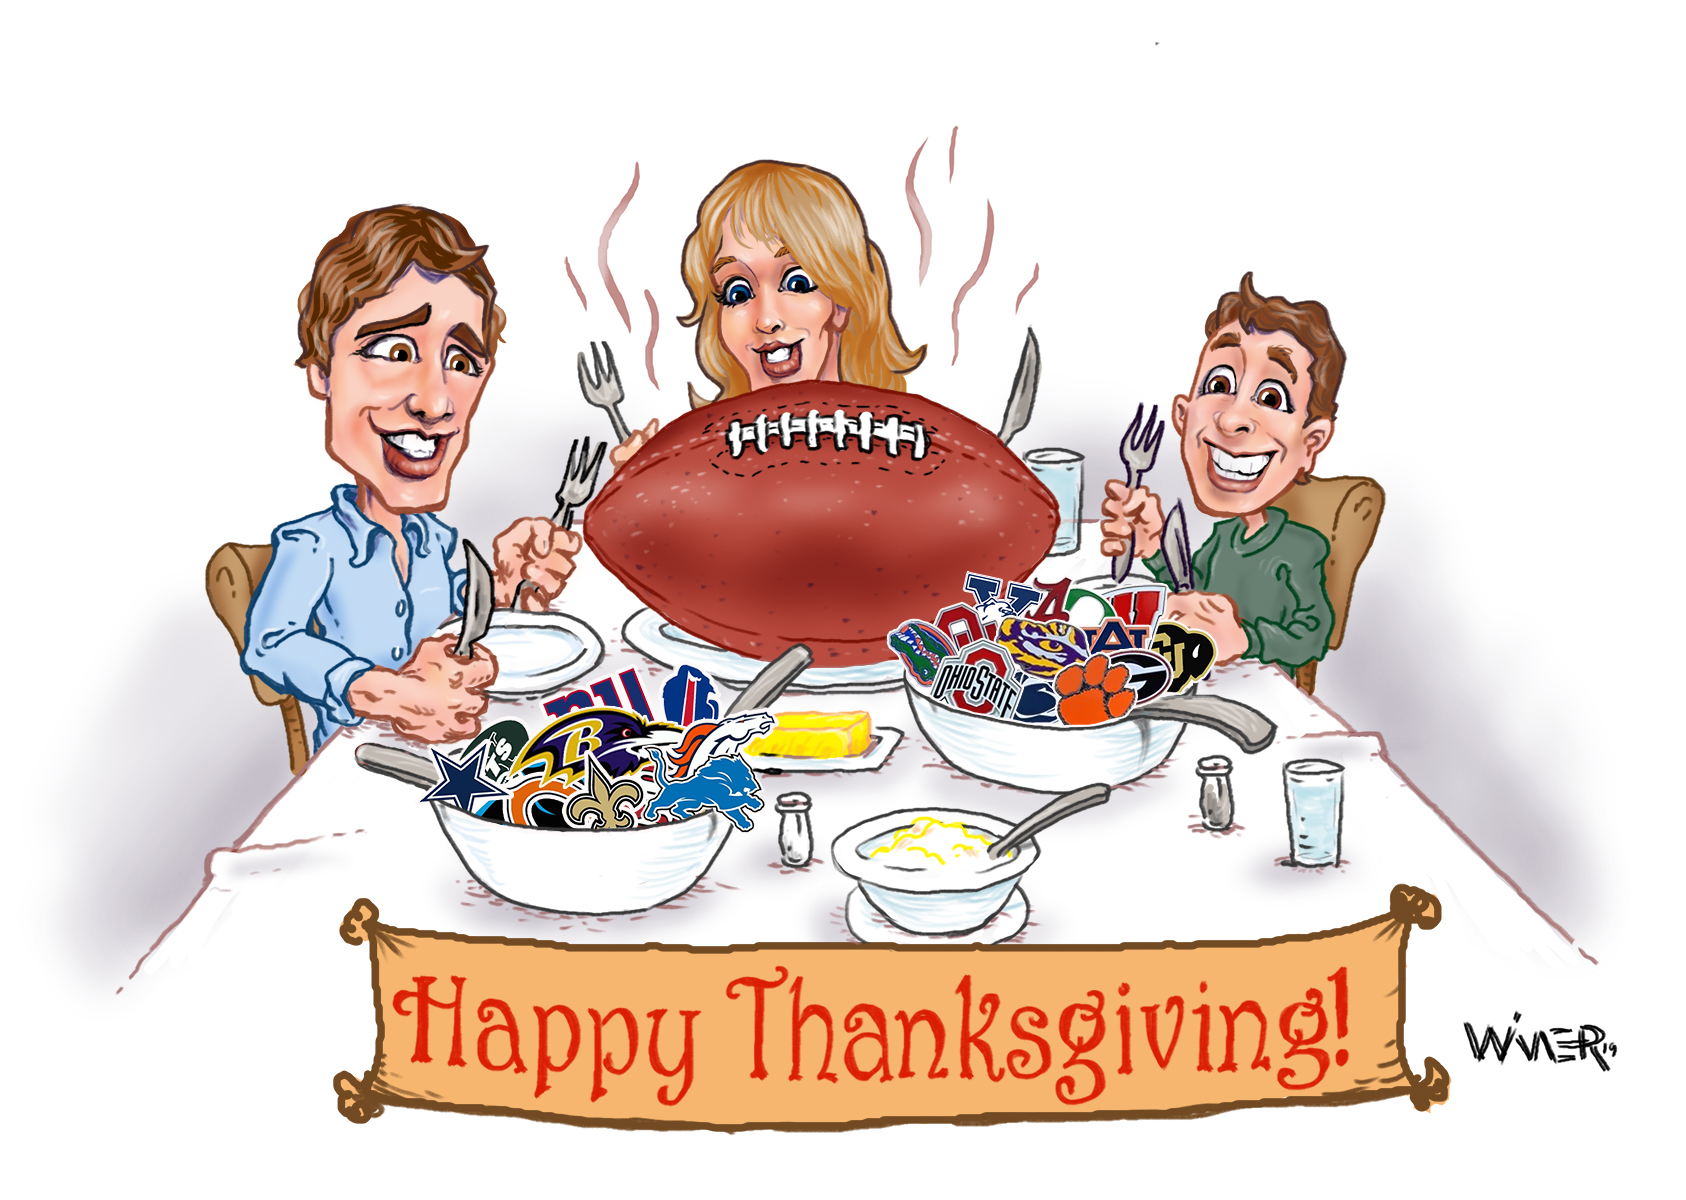 A lot of football is consumed by Americans, and certainly a ton of it around the holidays like Thanksgiving.